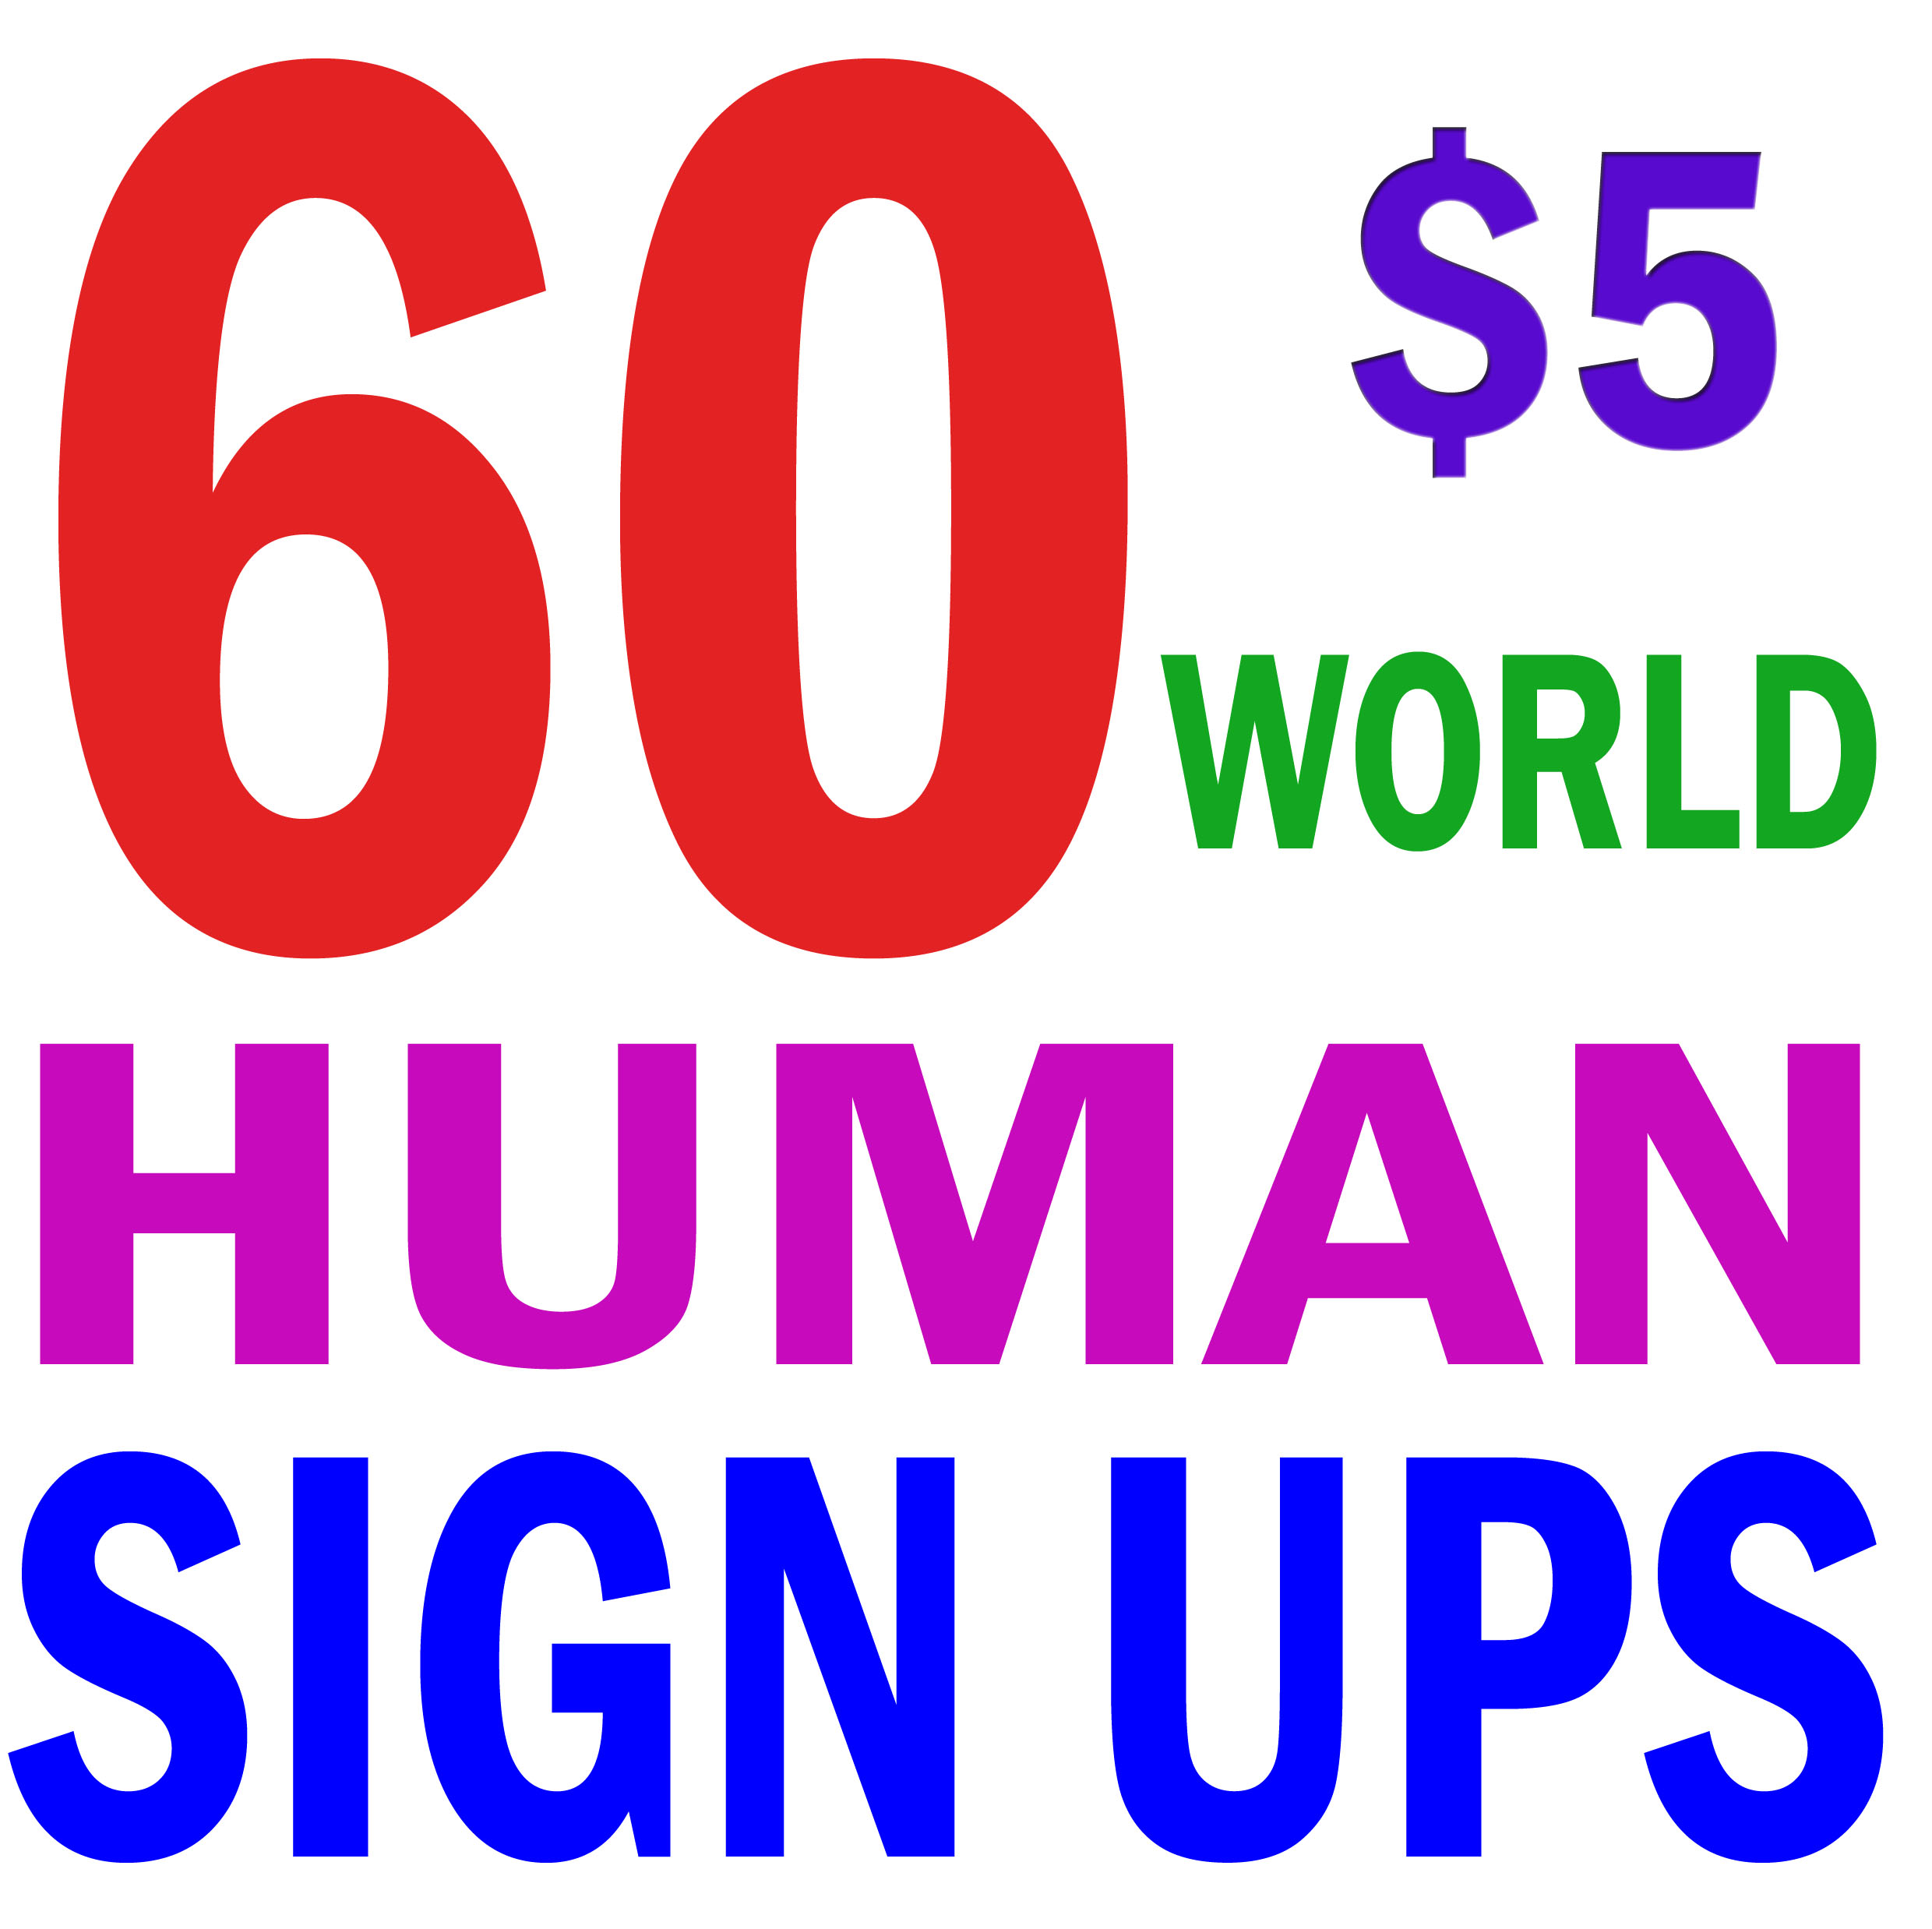 Buy 60 Human Signups from World Wide